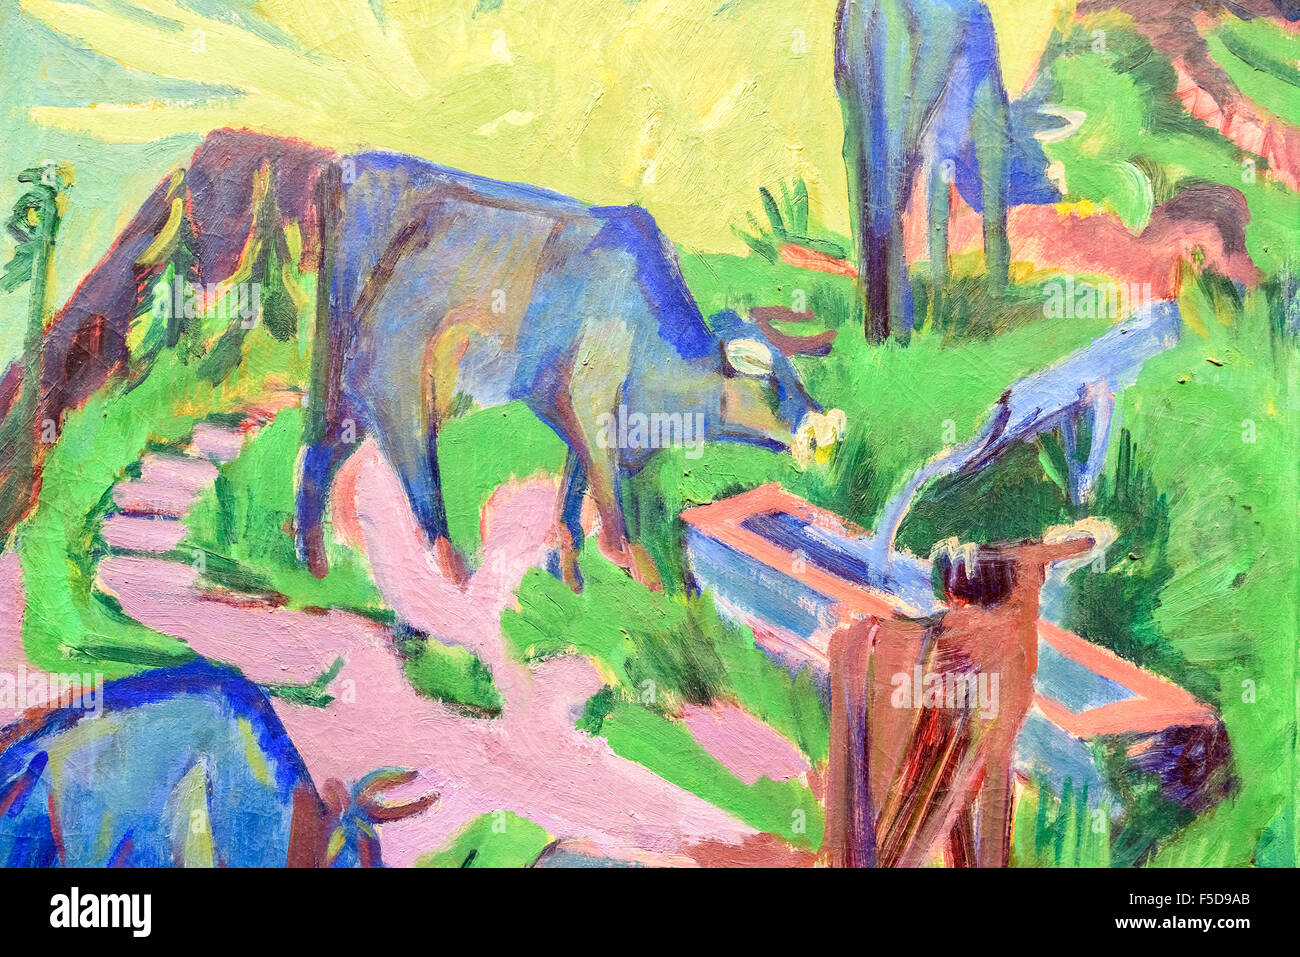 'Cattle At Sunset' By Ernst Ludwig Kirchner - Stock Image